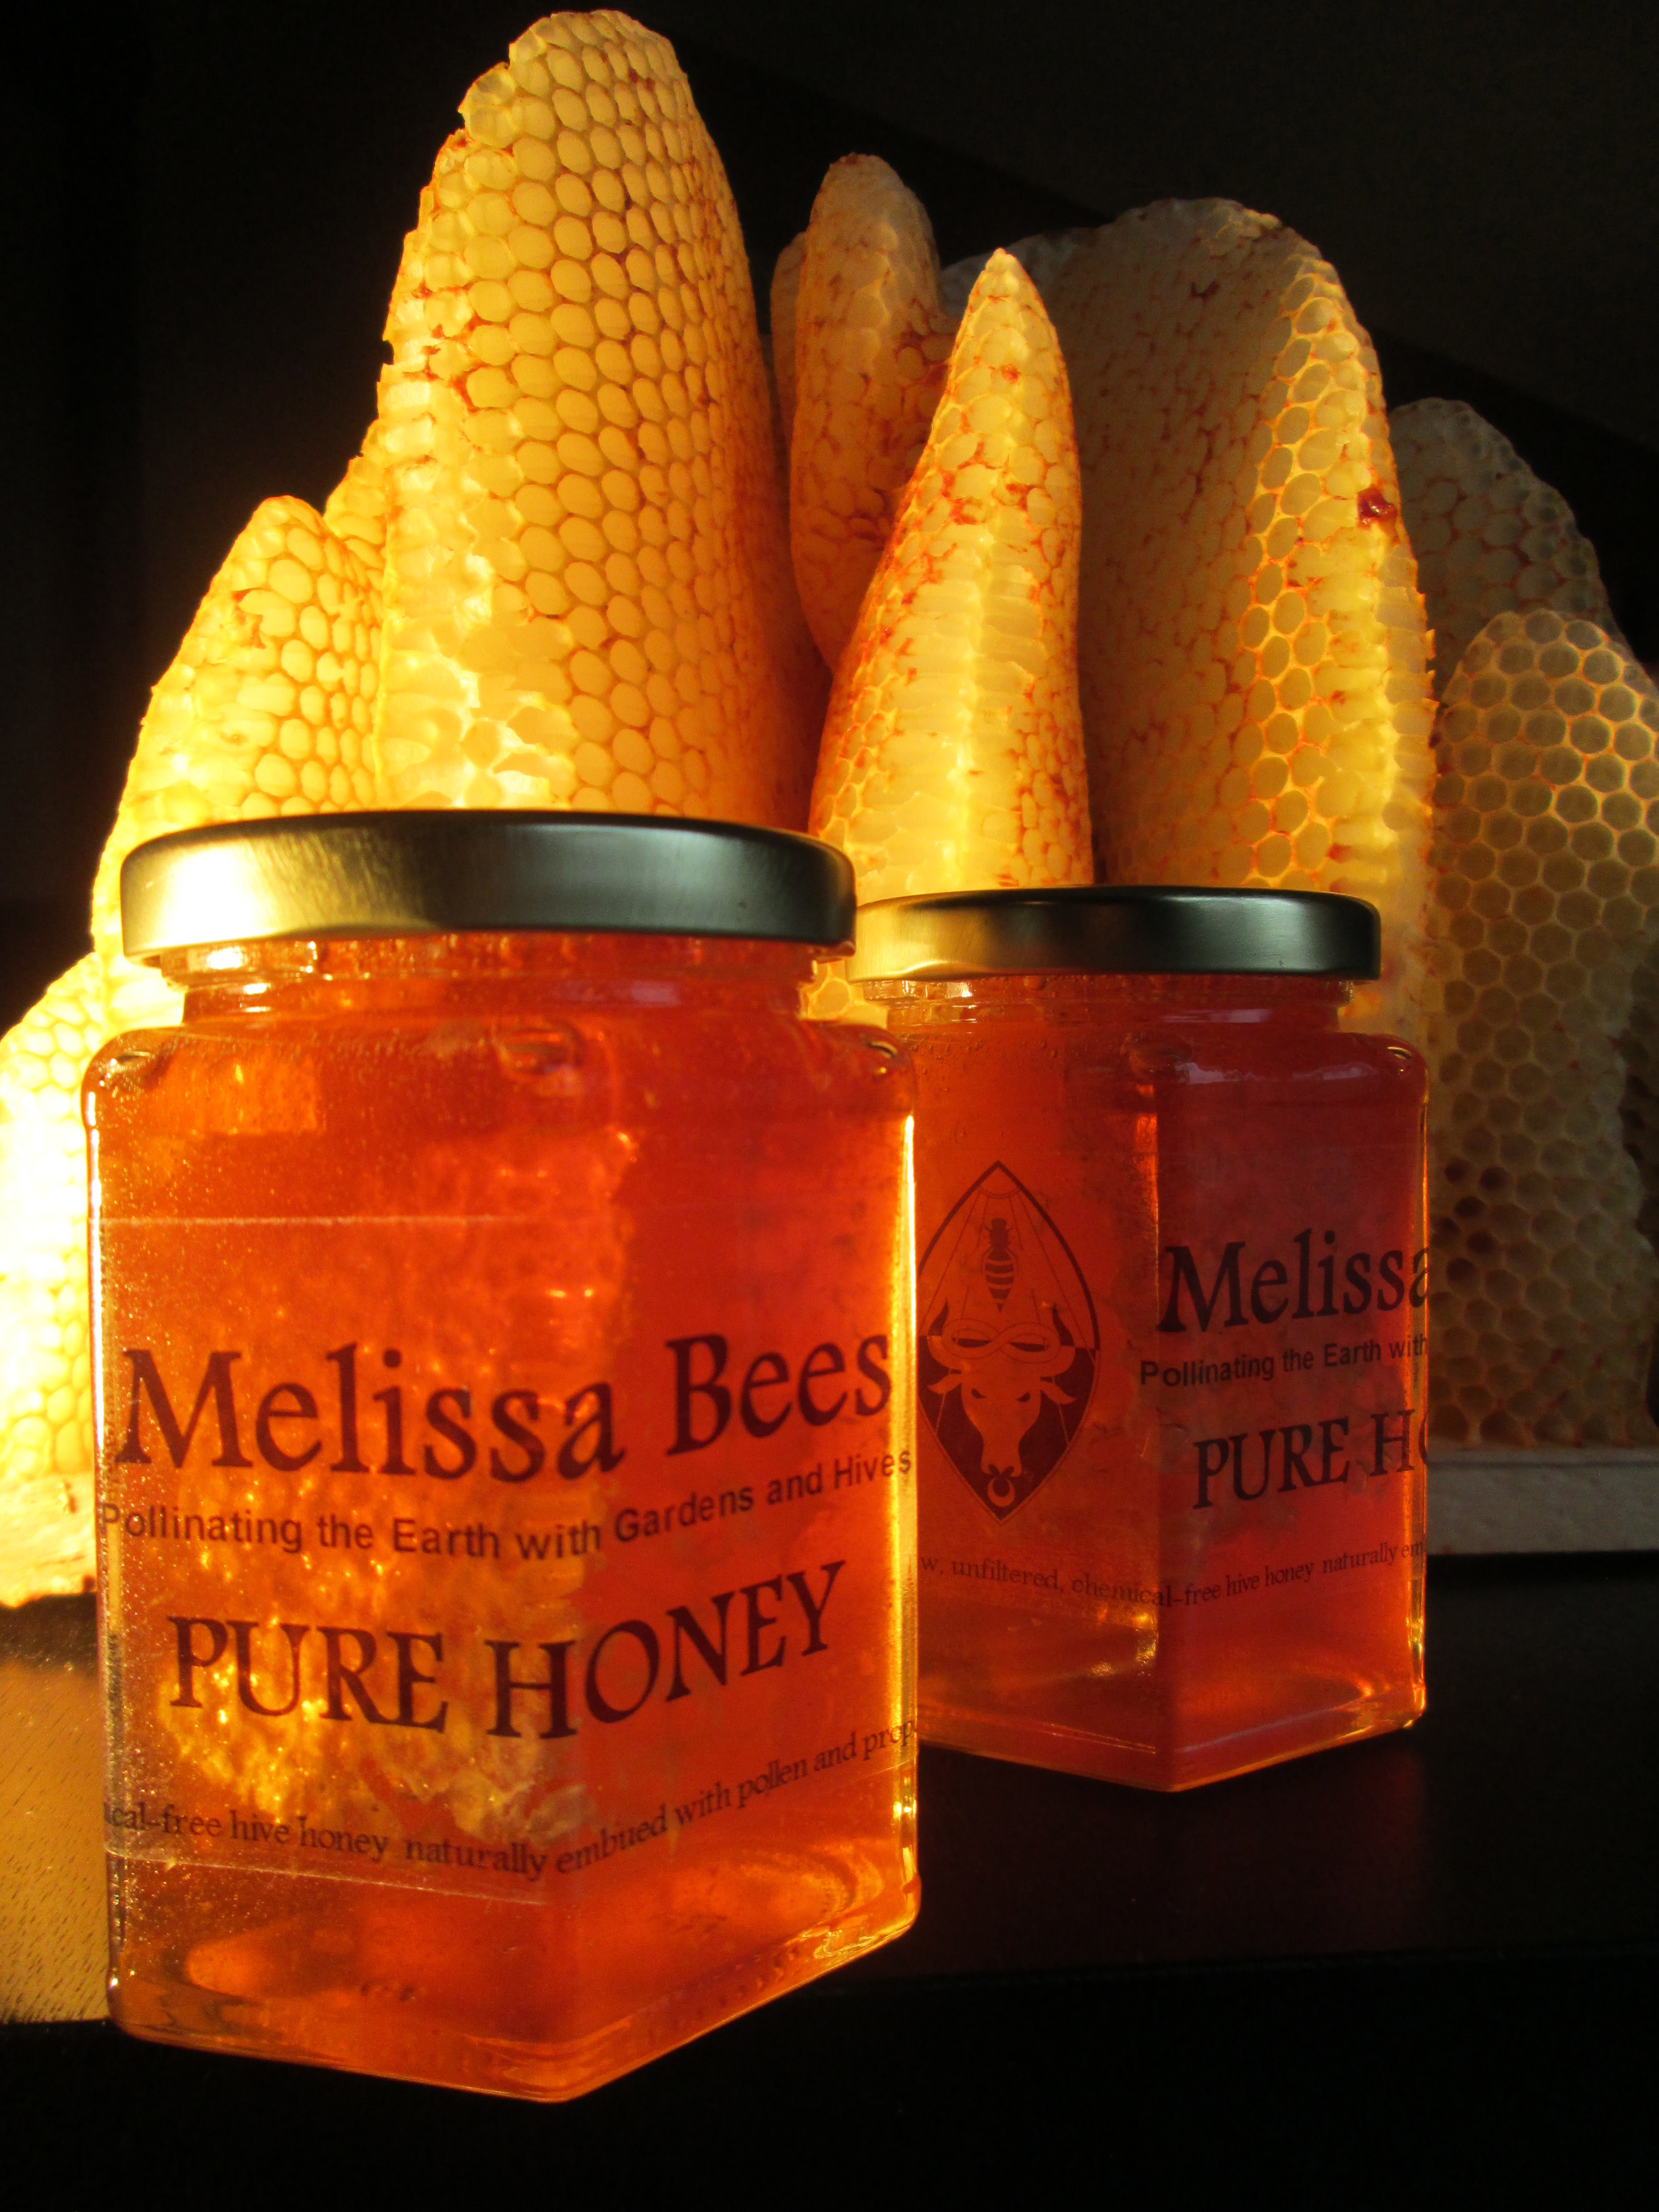 Chemical & Treatment-Free Hive Honey